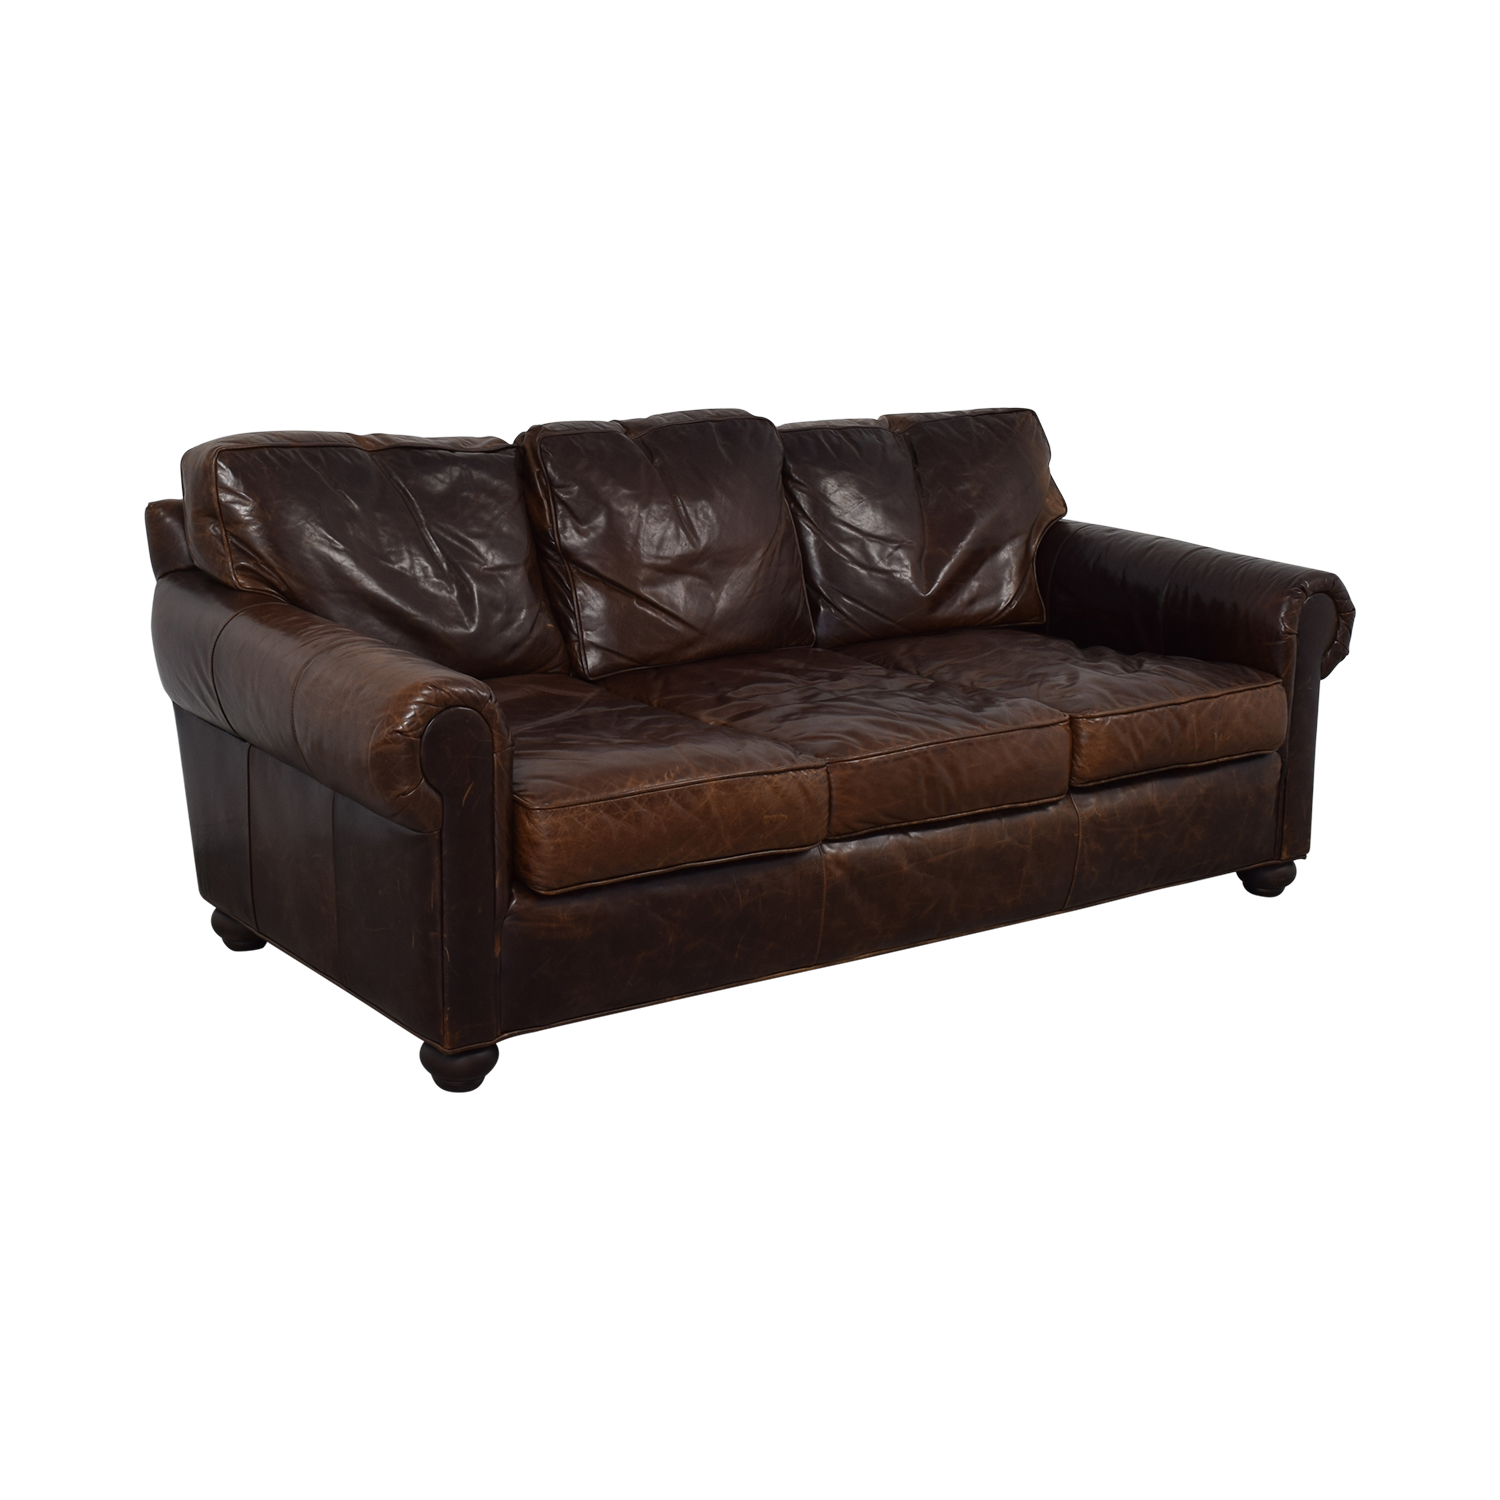 Restoration Hardware Restoration Hardware Lancaster Leather Sofa for sale